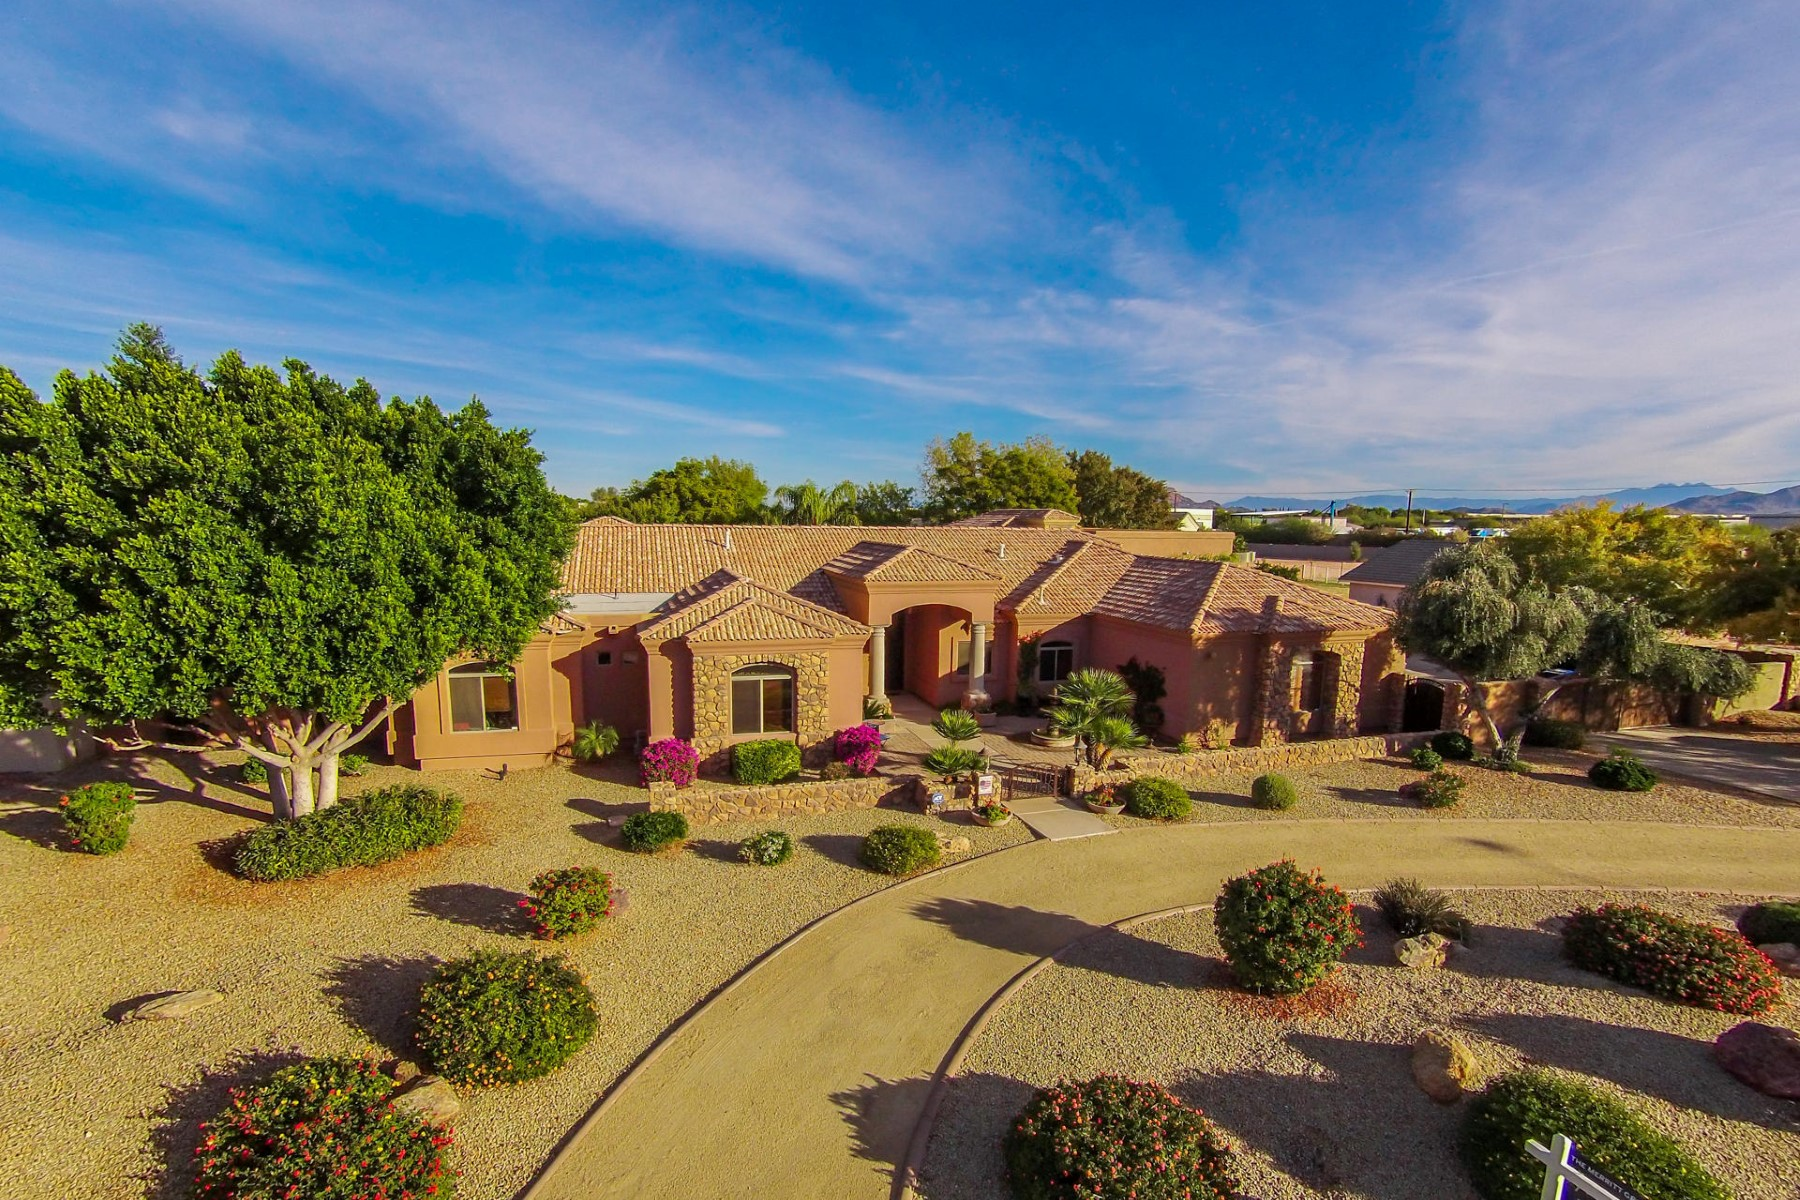 獨棟家庭住宅 為 出售 在 Elegant Mediterranean estate within the custom community of Somerset Estates 3914 E Omega Cir Mesa, 亞利桑那州, 85215 美國